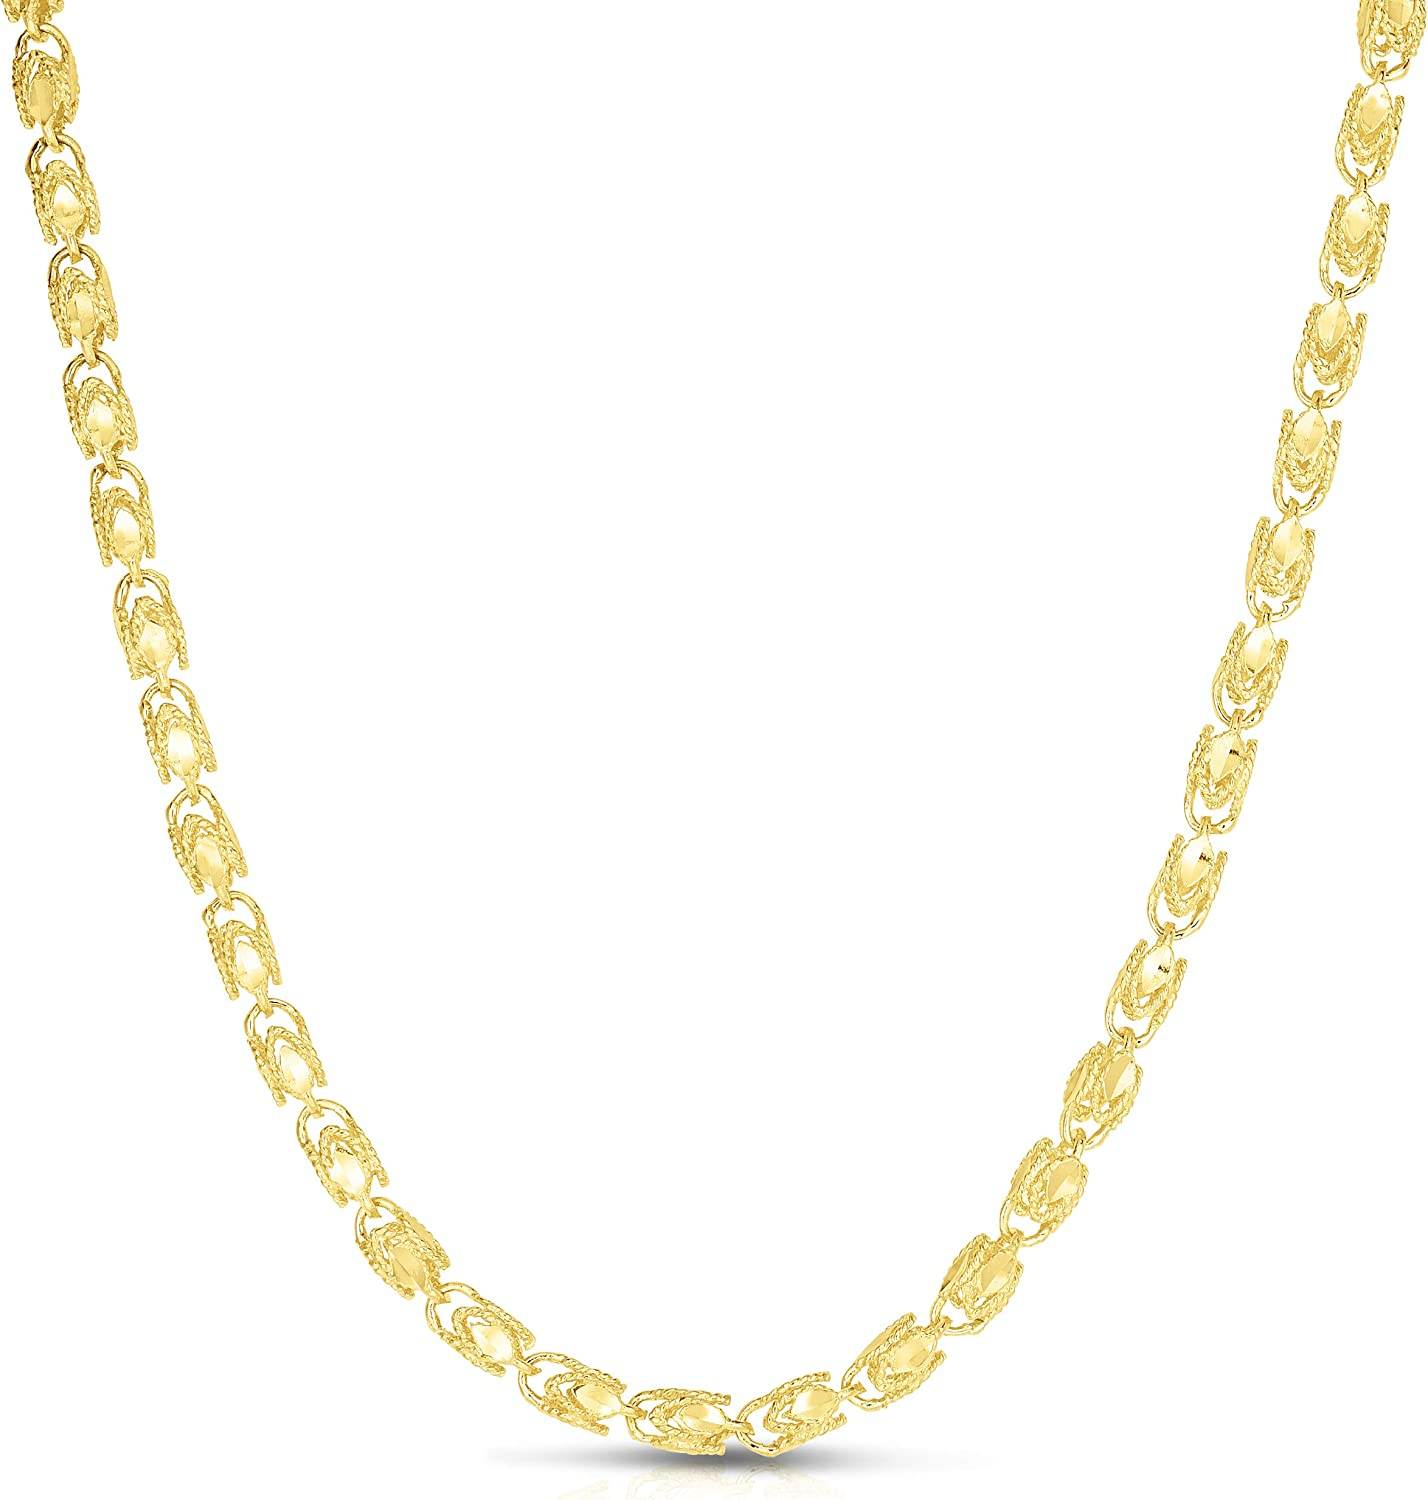 Floreo 10k Yellow Gold 5 ☆ very popular 3.5mm excellence Rope Necklace Solid Chain Turkish